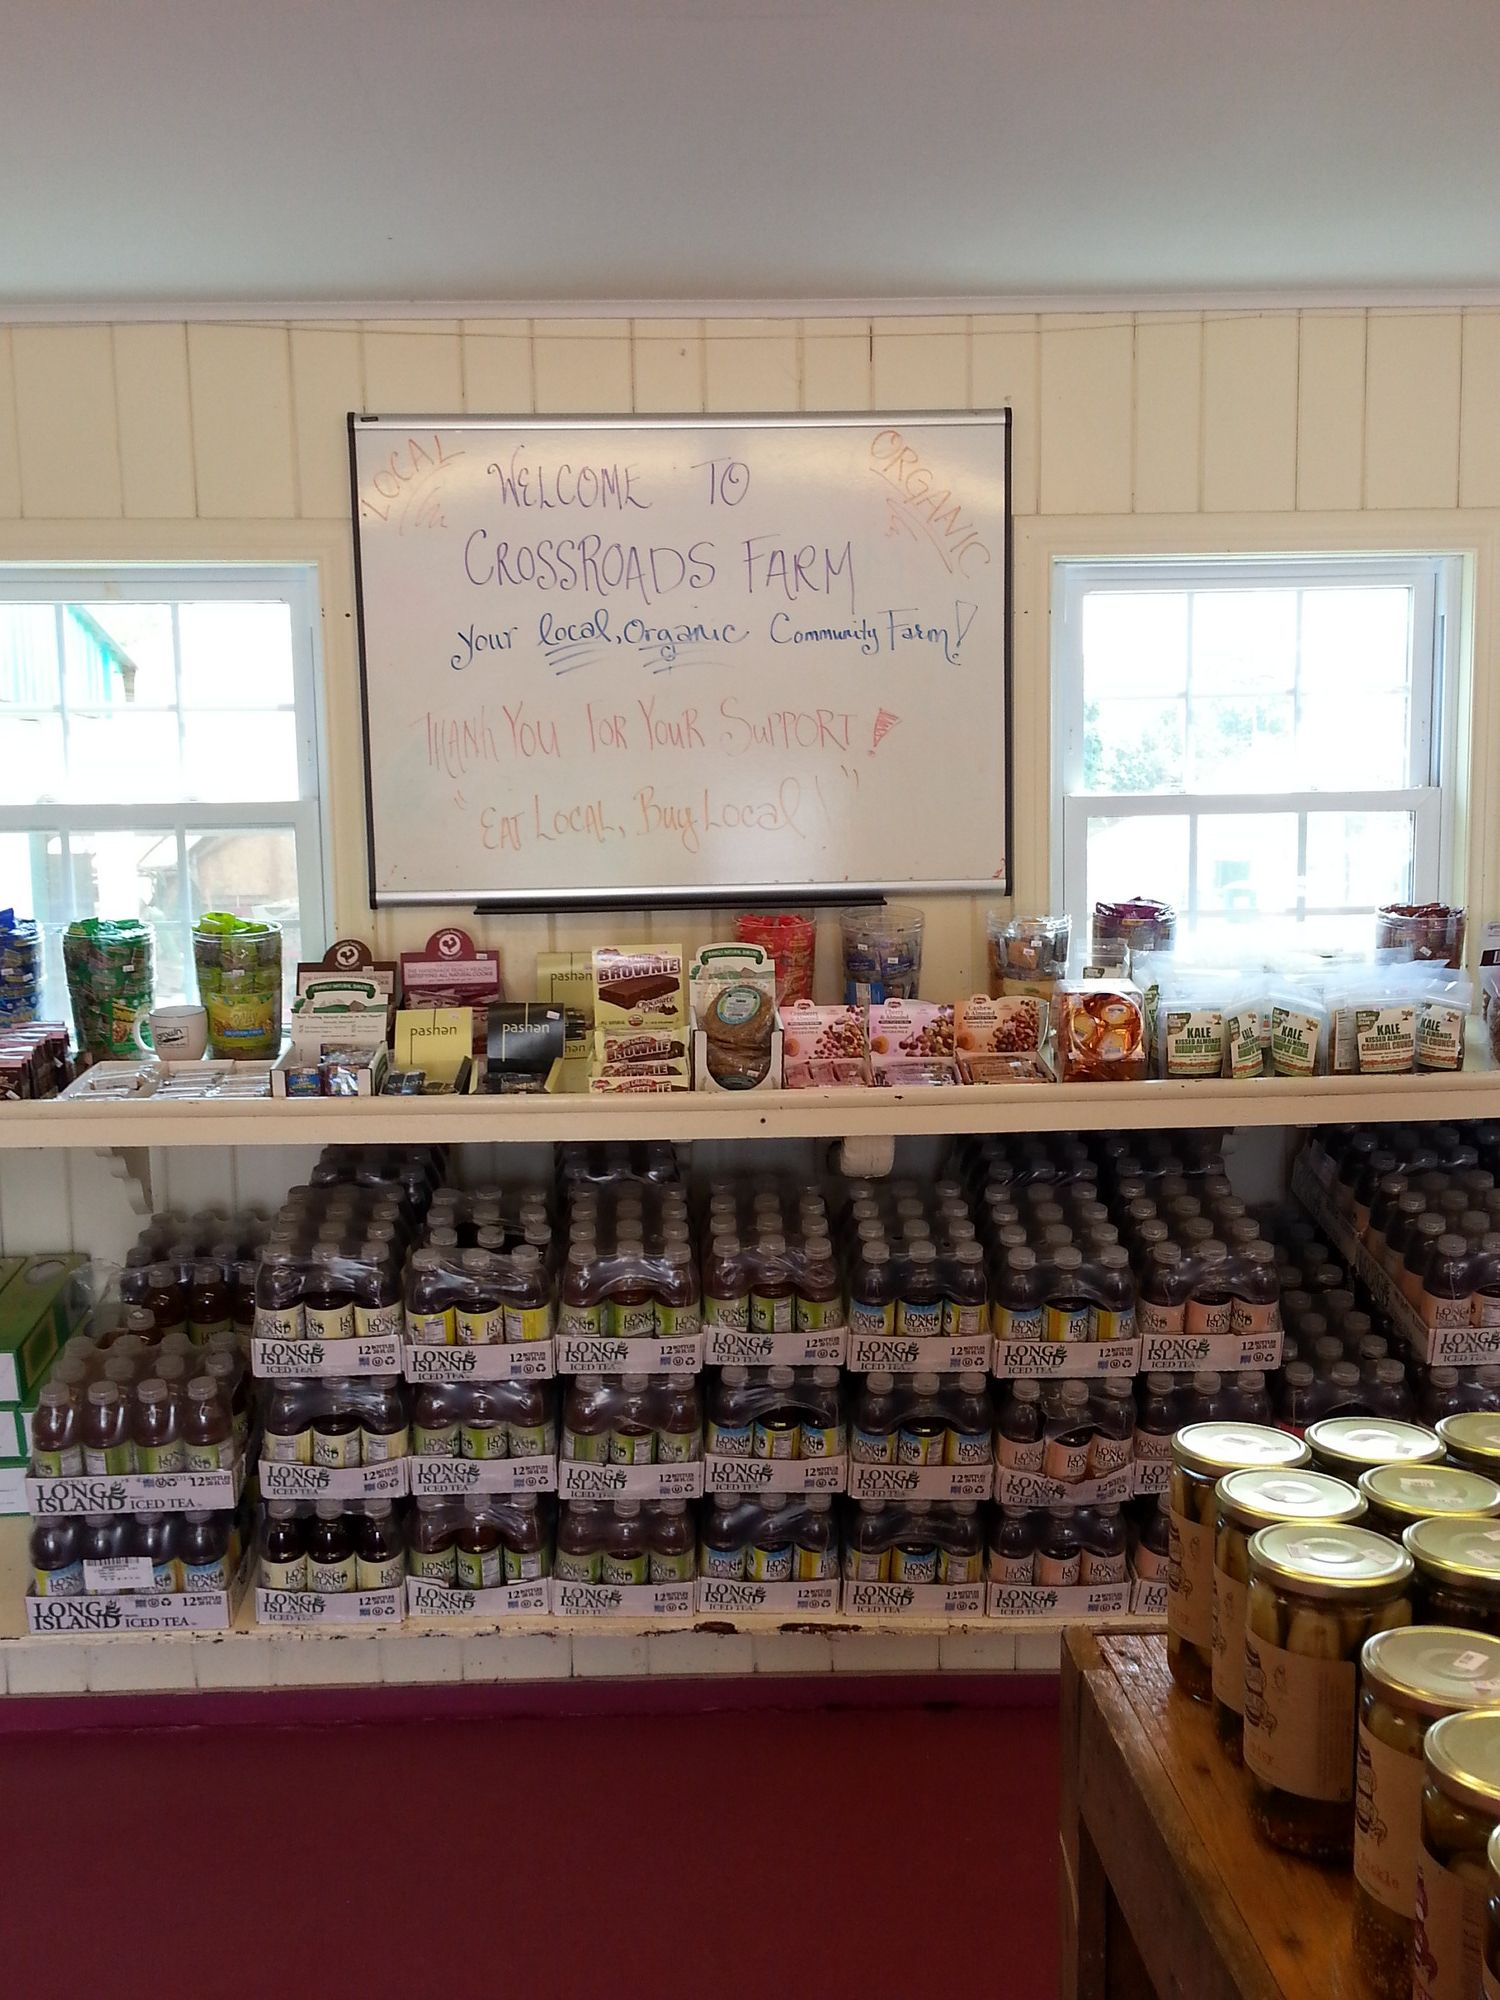 The farm stand at Crossroads offered a variety of organic health foods and baked goods, including organic nuts, dried fruits, trail mixes, brownies, cakes and cookies, fruit spreads and jars of honey from its resident beehive.